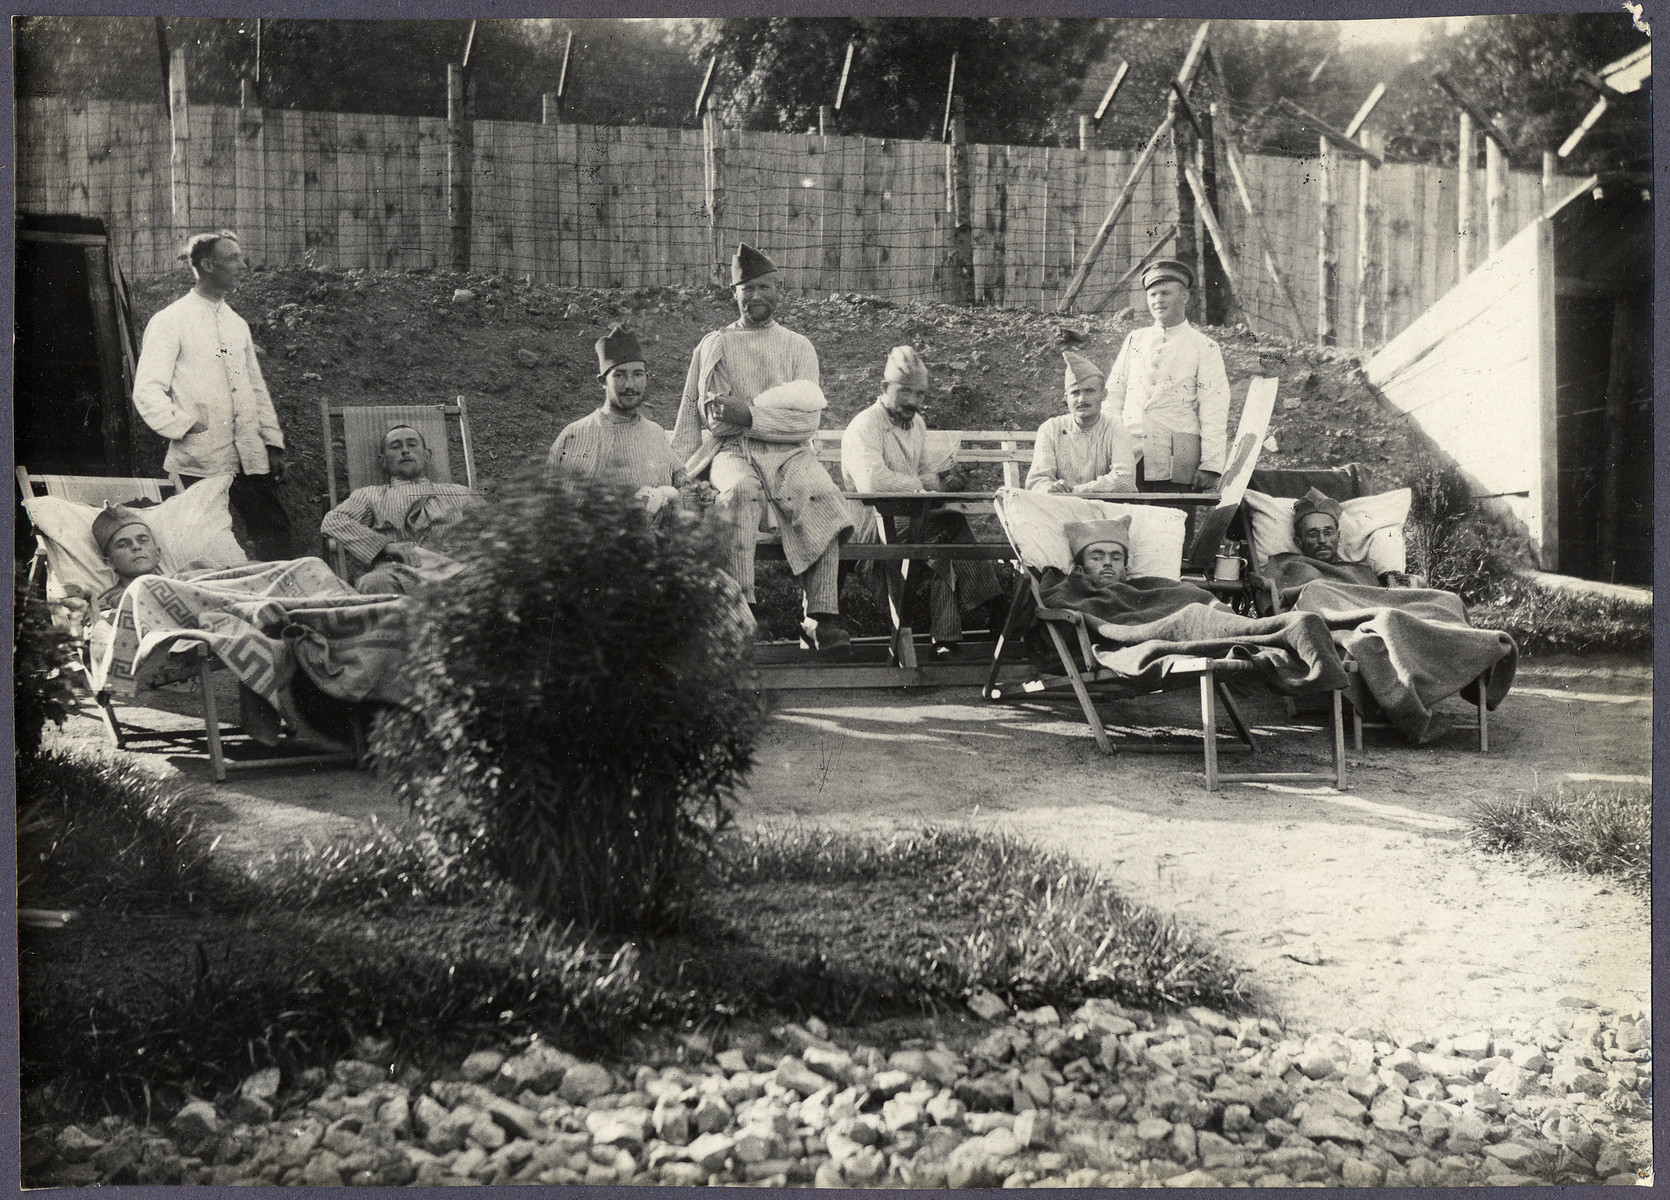 World War I POWs, many in French Army caps, relax outside in a military hospital at a prisoner of war camp.